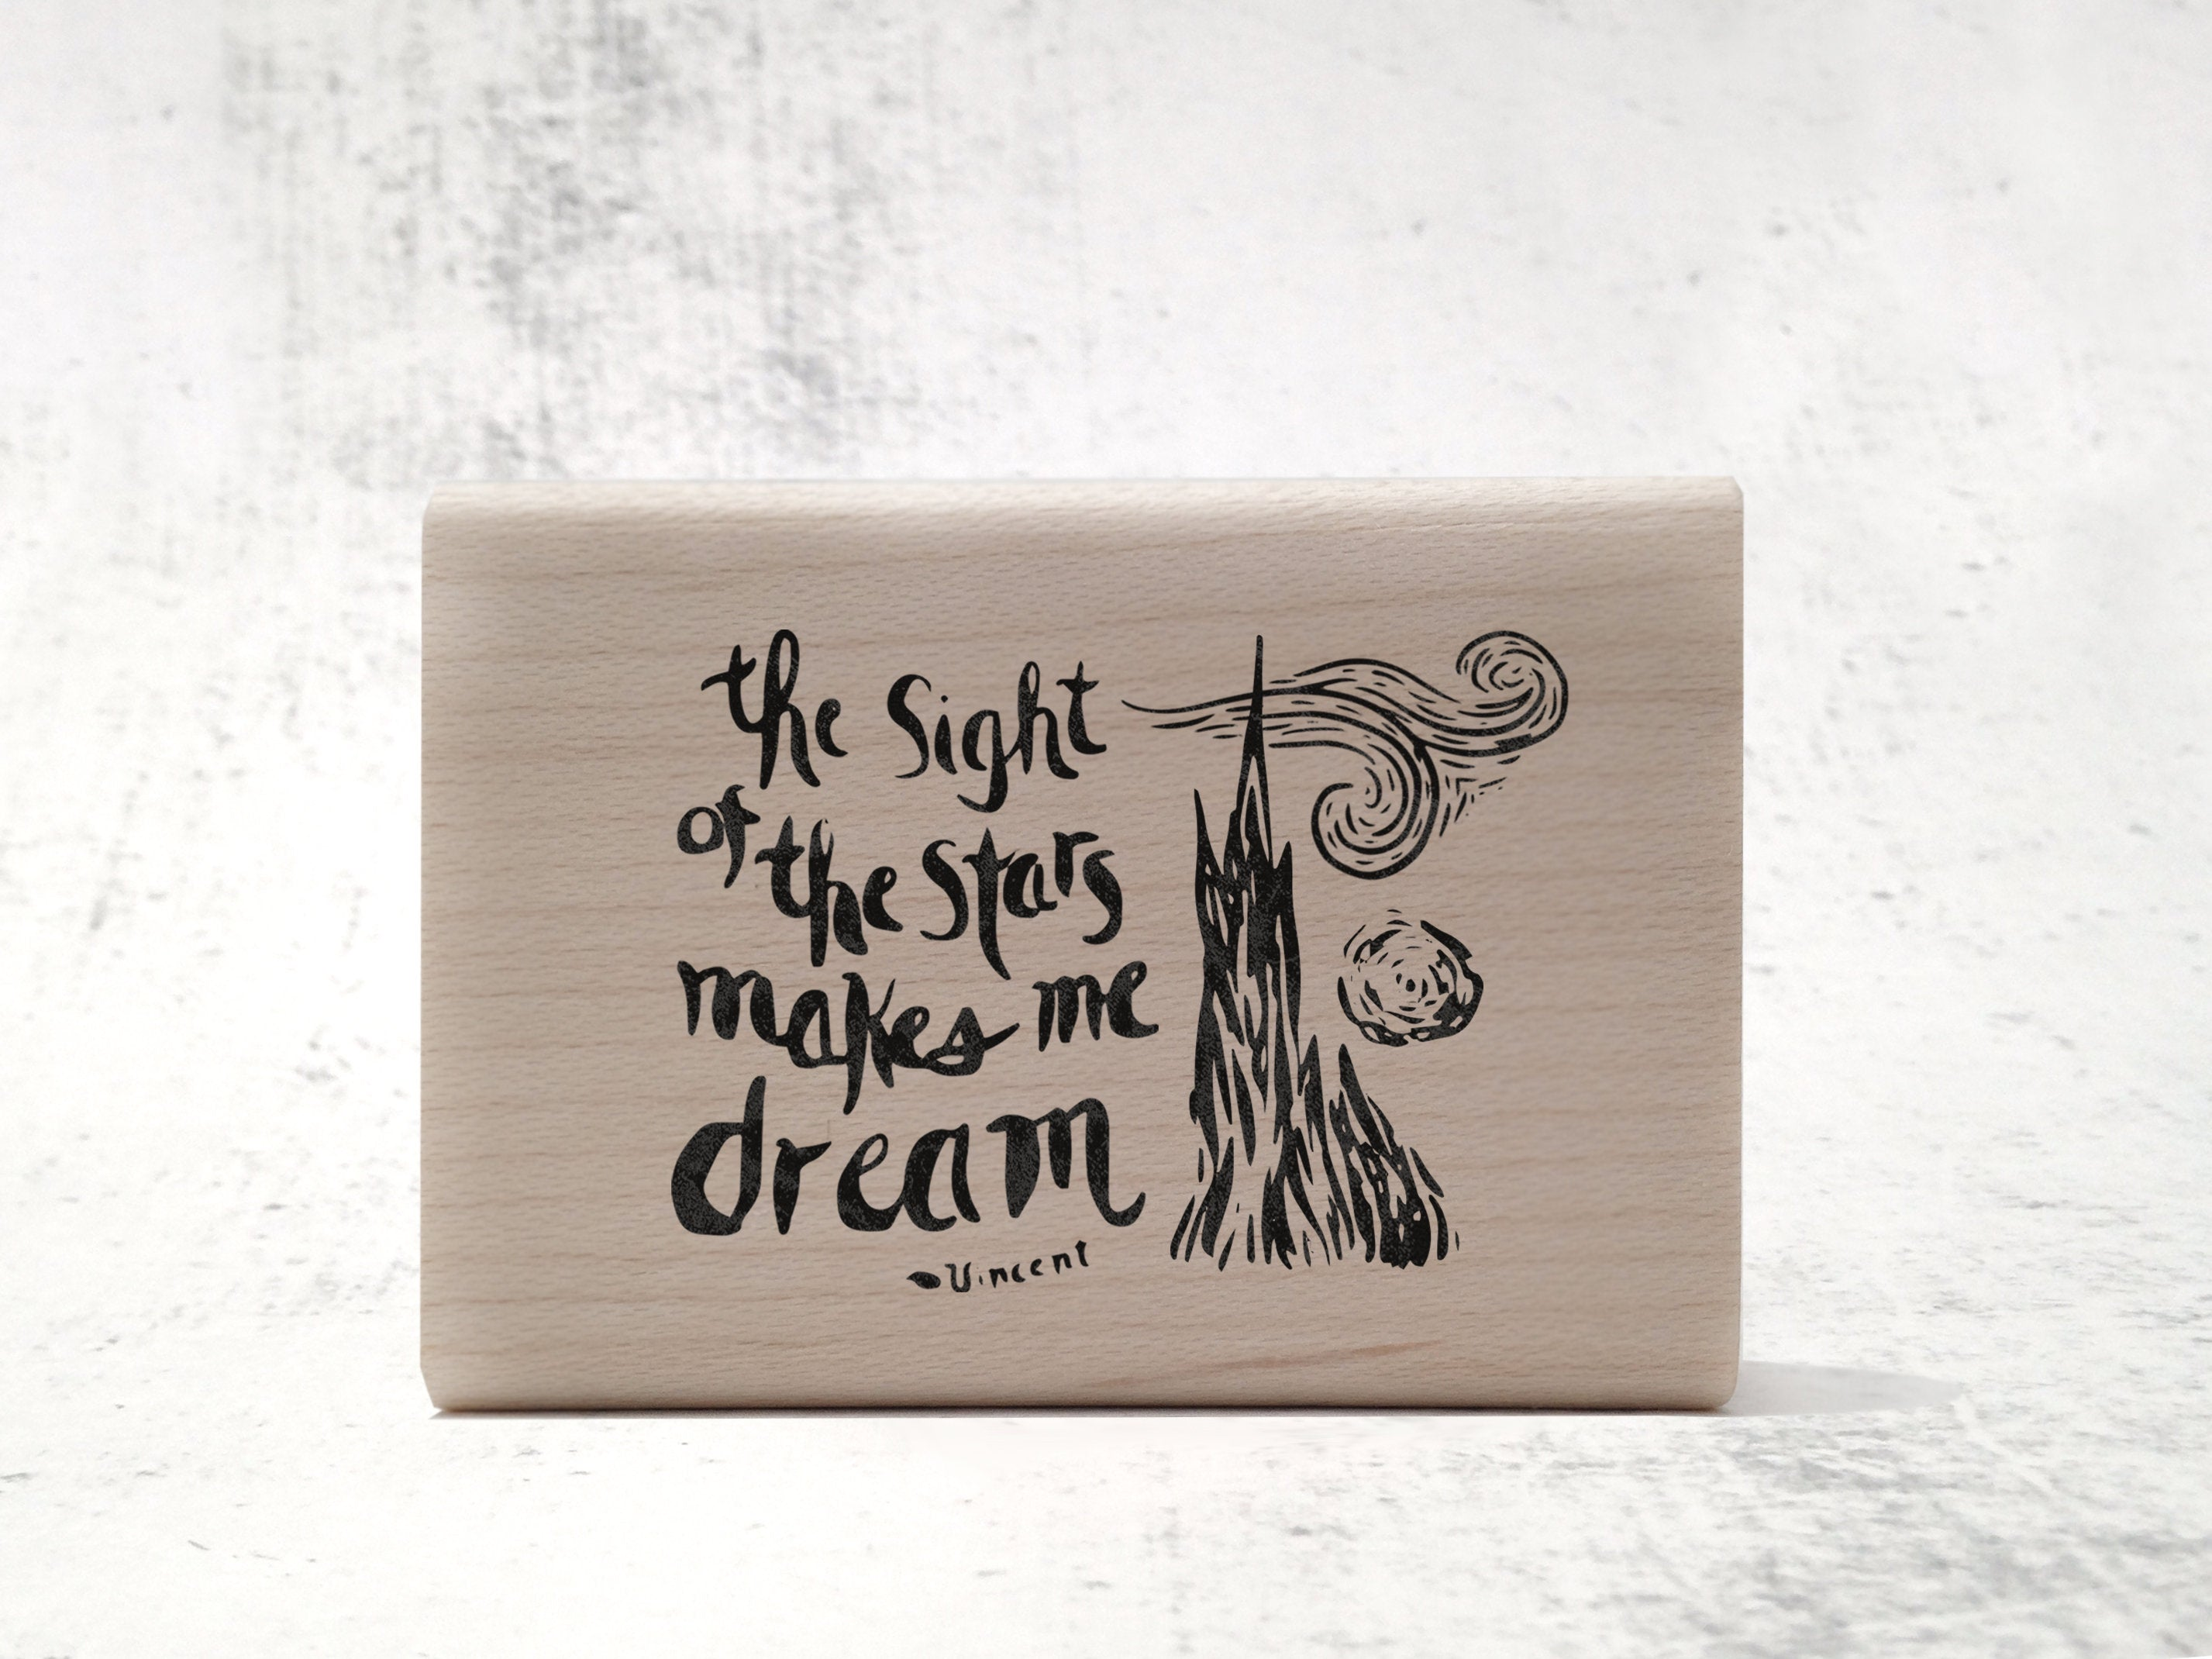 Van Gogh's Stars Woodcut Style Stamp - Illustrated Astronomy / Starry Night Celestial Rubber Stamp - Fine Art Stamp